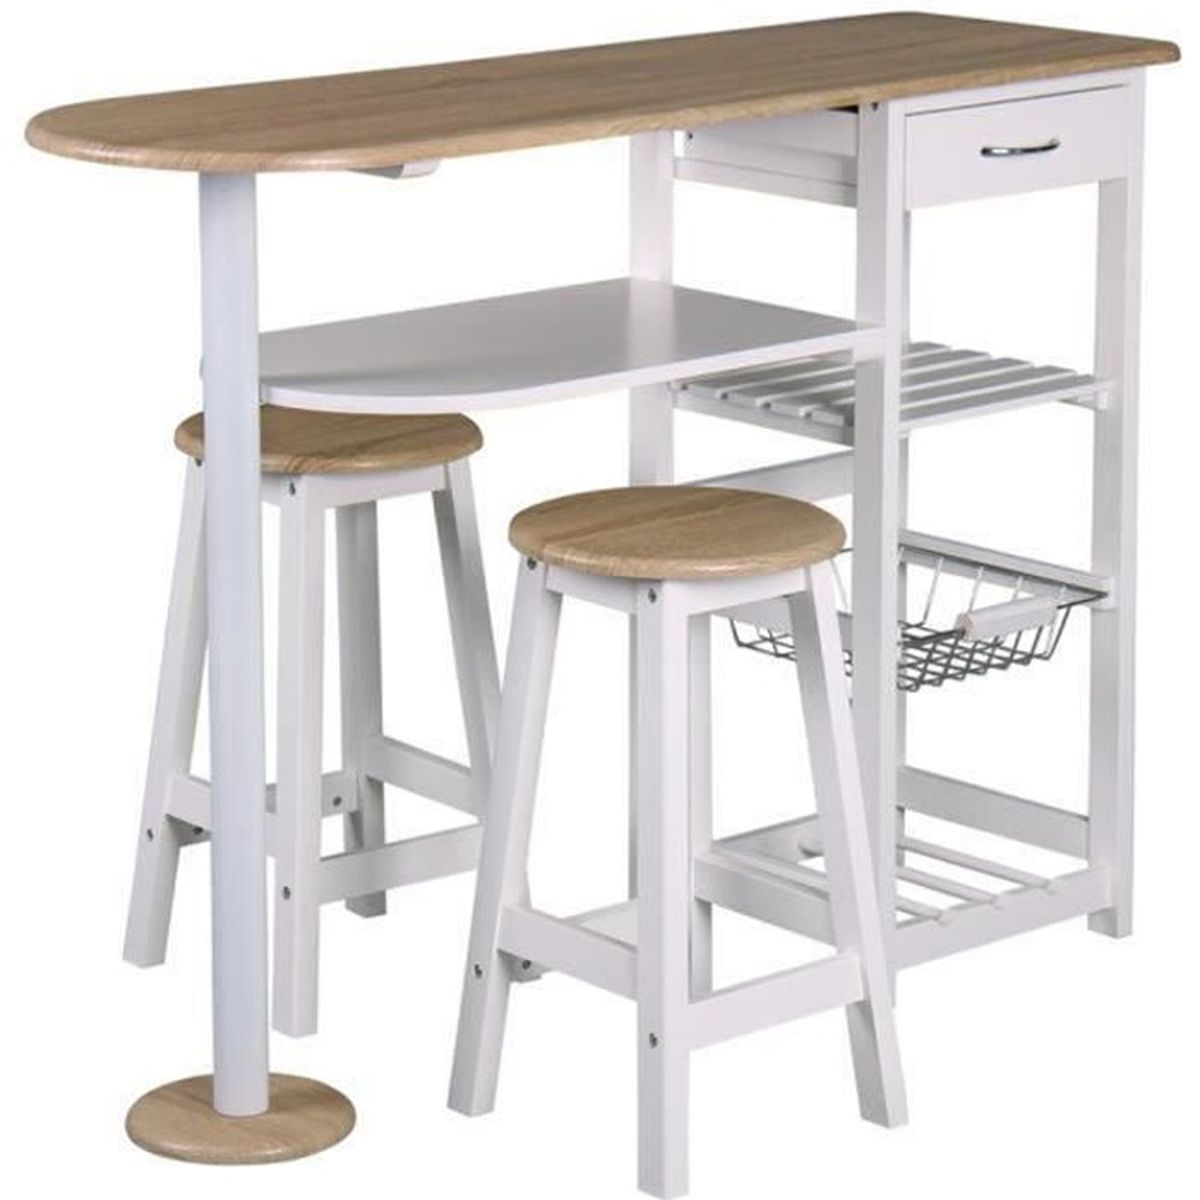 Table bar avec rangement achat vente table bar avec for Achat table bar